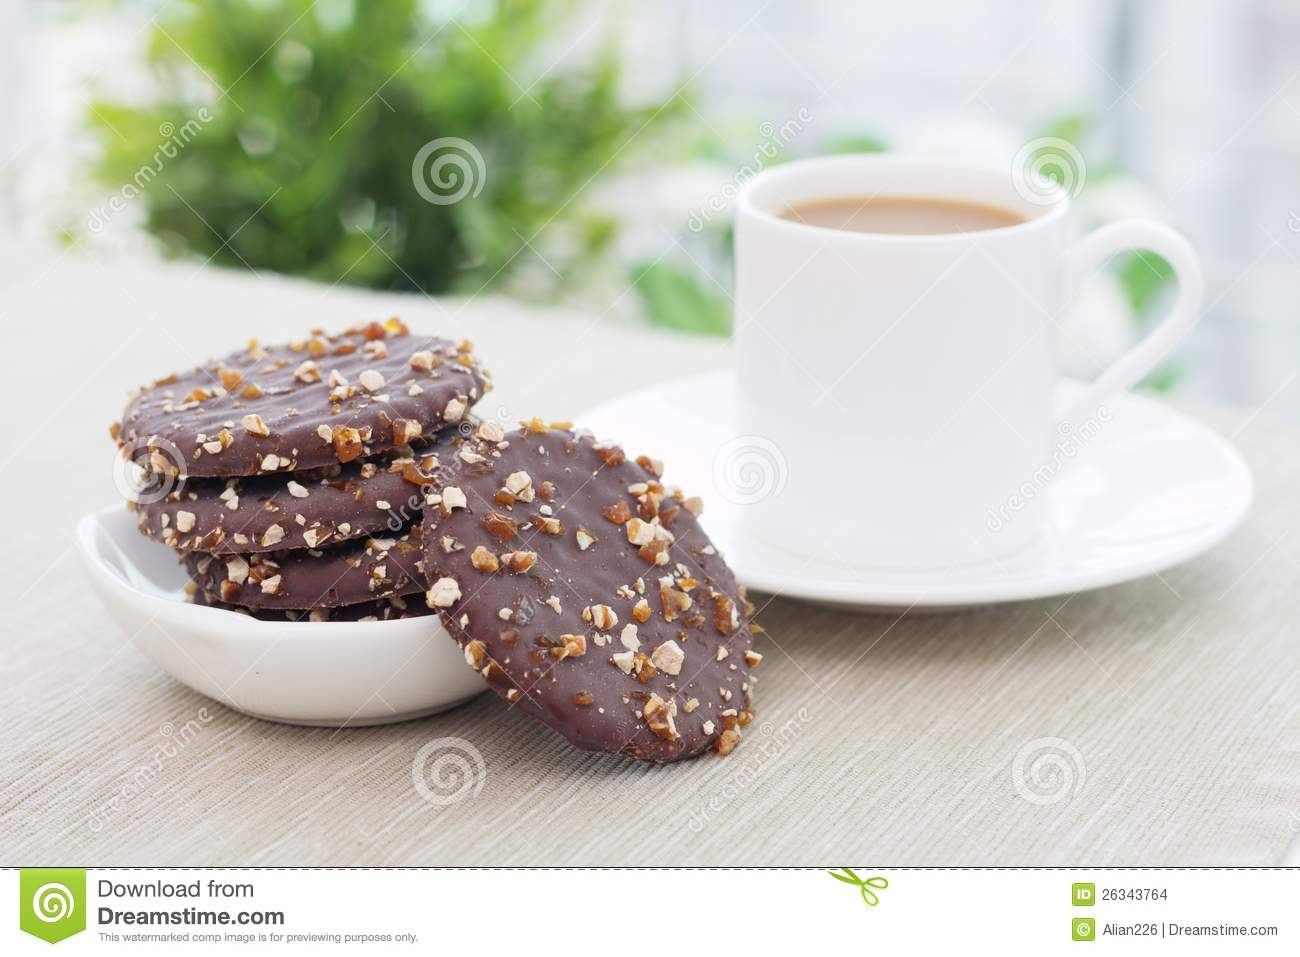 Coffee and biscuits on the table.